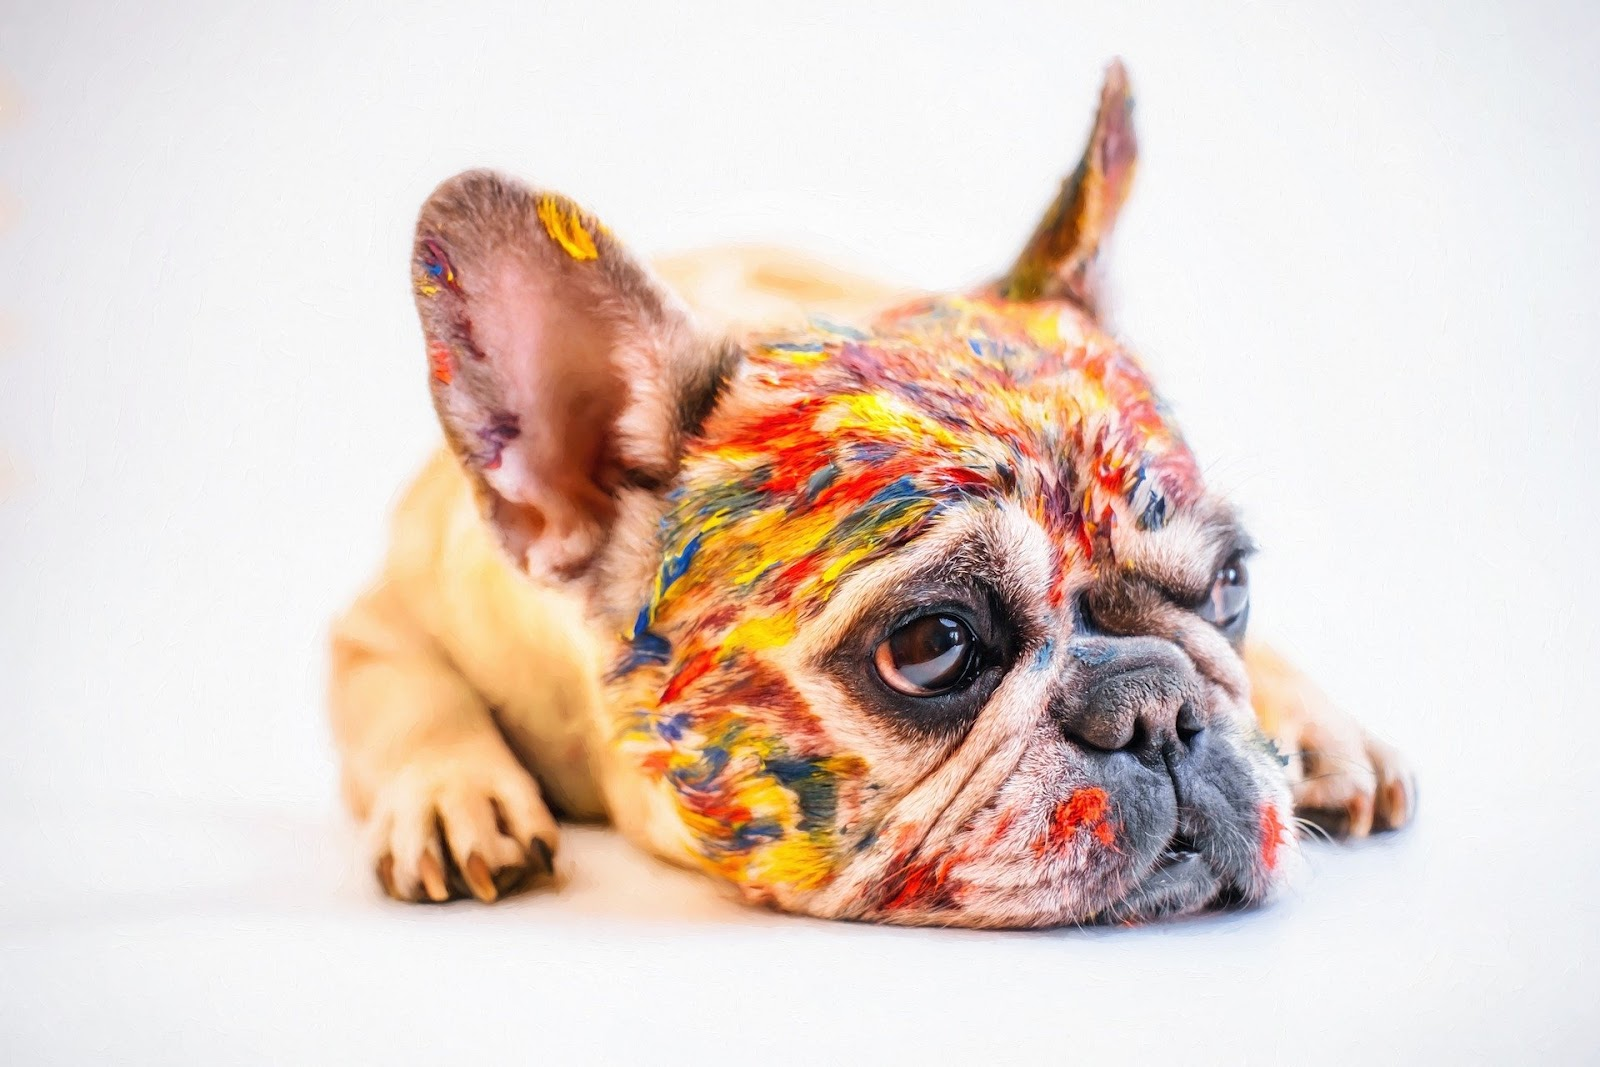 little dog covered in many colors of paint